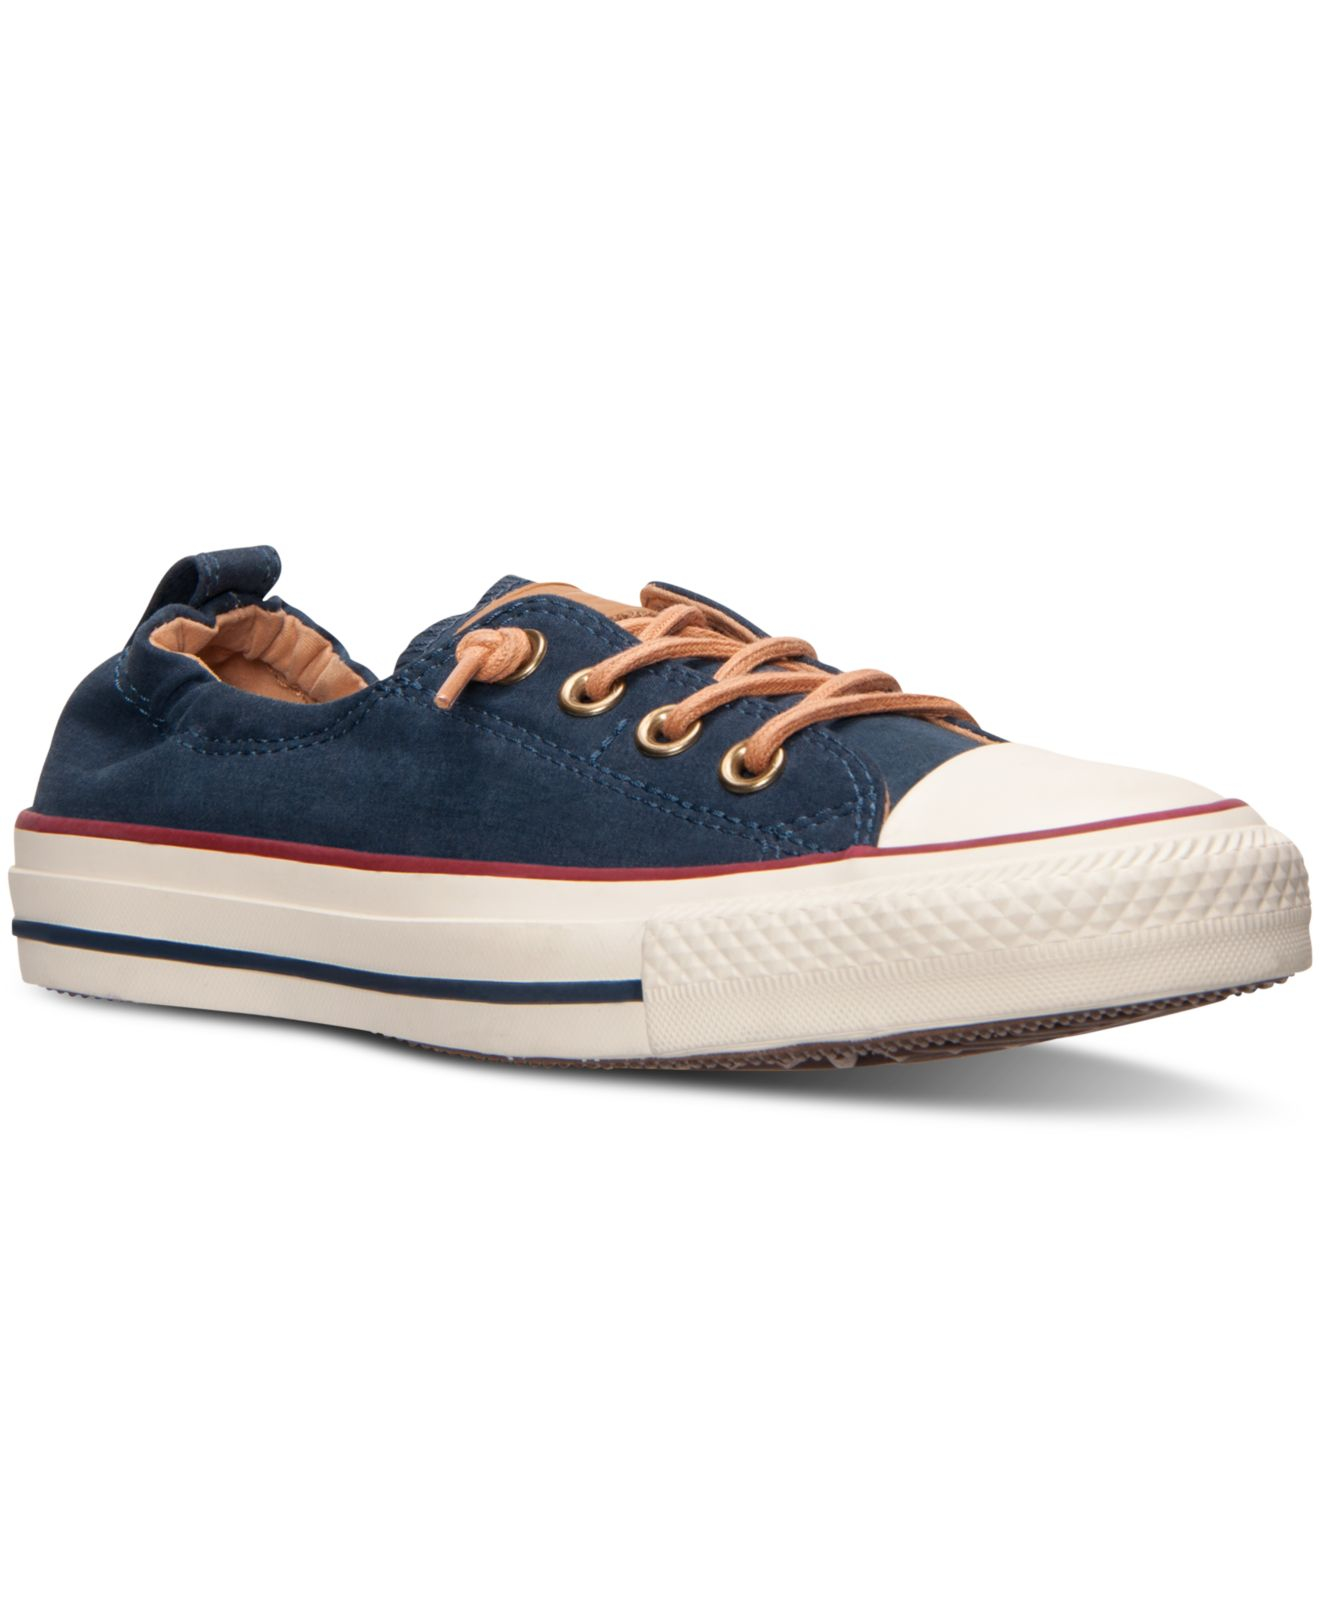 Lyst - Converse Women s Chuck Taylor Shoreline Peached Canvas Casual ... c5aab6721